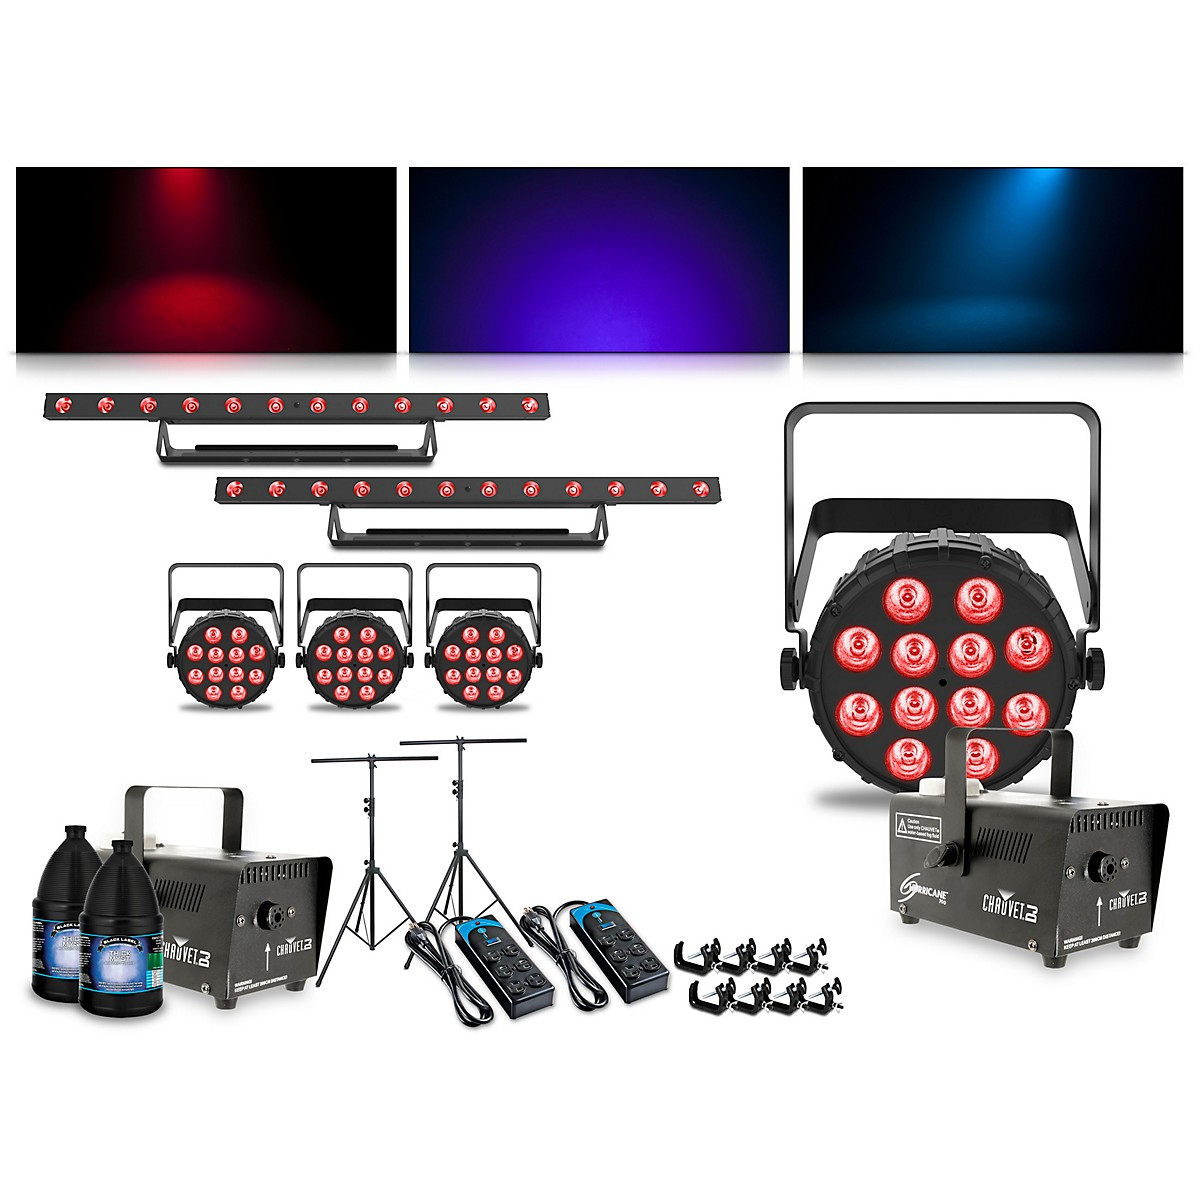 CHAUVET DJ Complete Lighting Package with SlimPAR T12 BT, ColorBAND T3 BT and Hurricane 700 Fog Machine